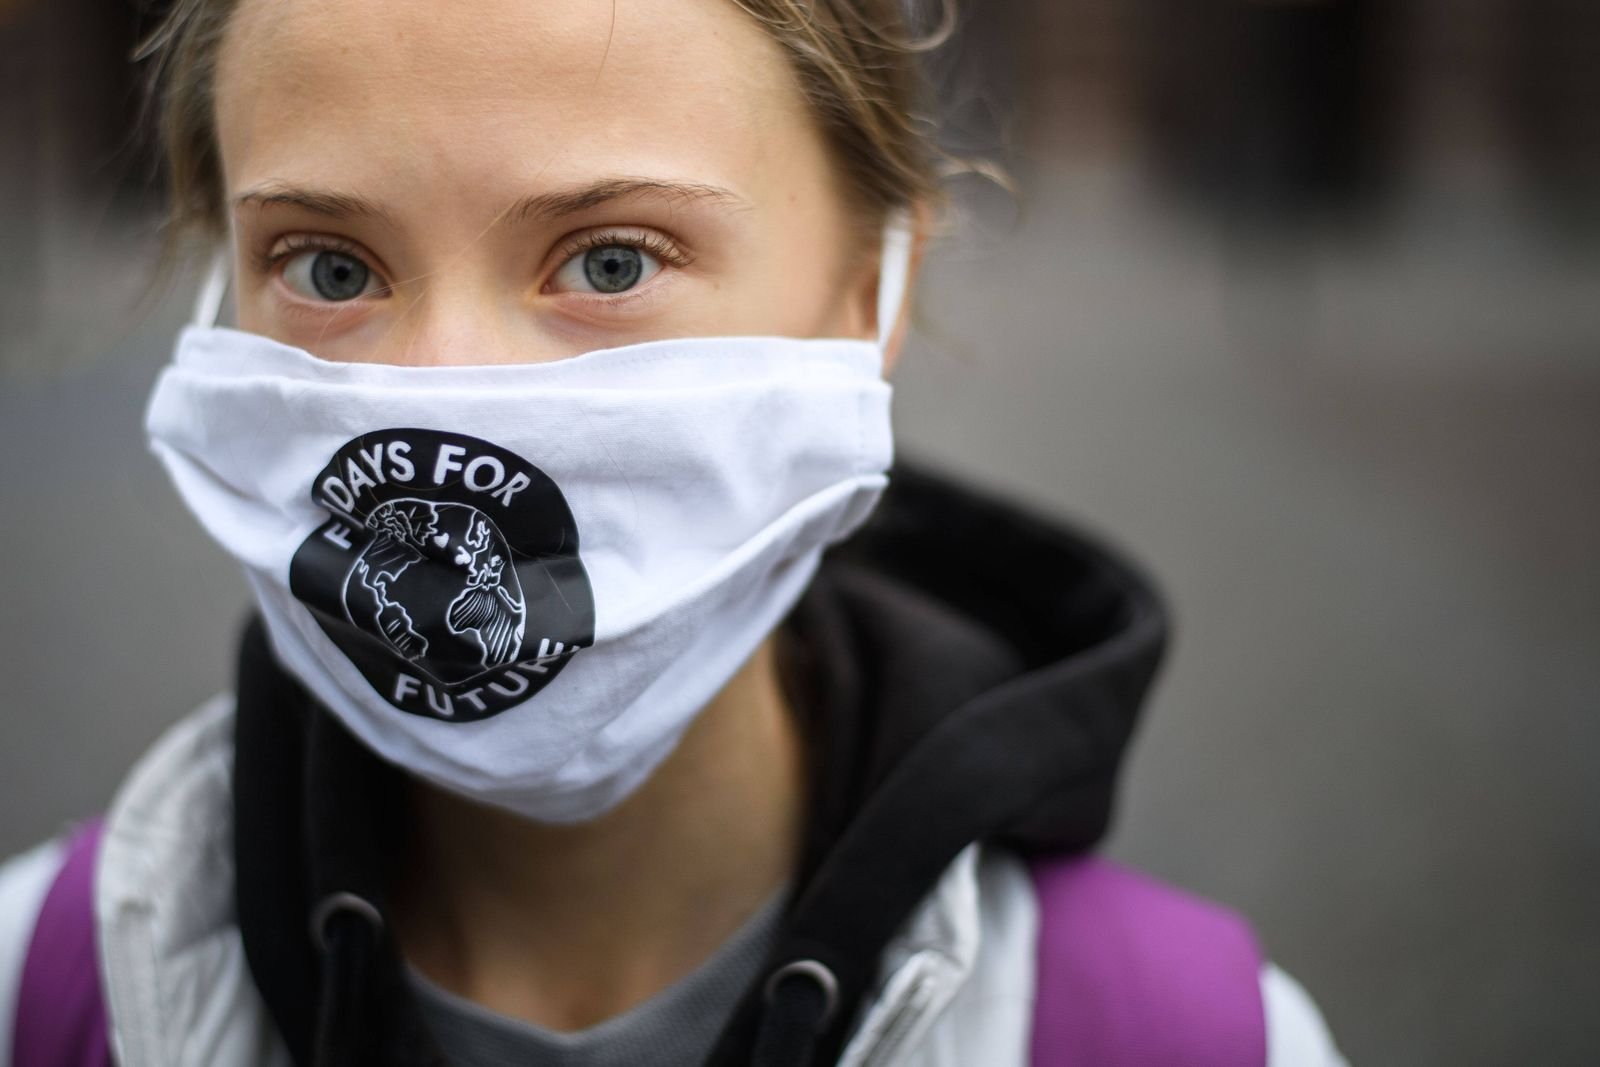 201002 Climate activist Greta Thunberg pose for a portrait during the Fridays for Future Stockholm Climate Strike on Oc